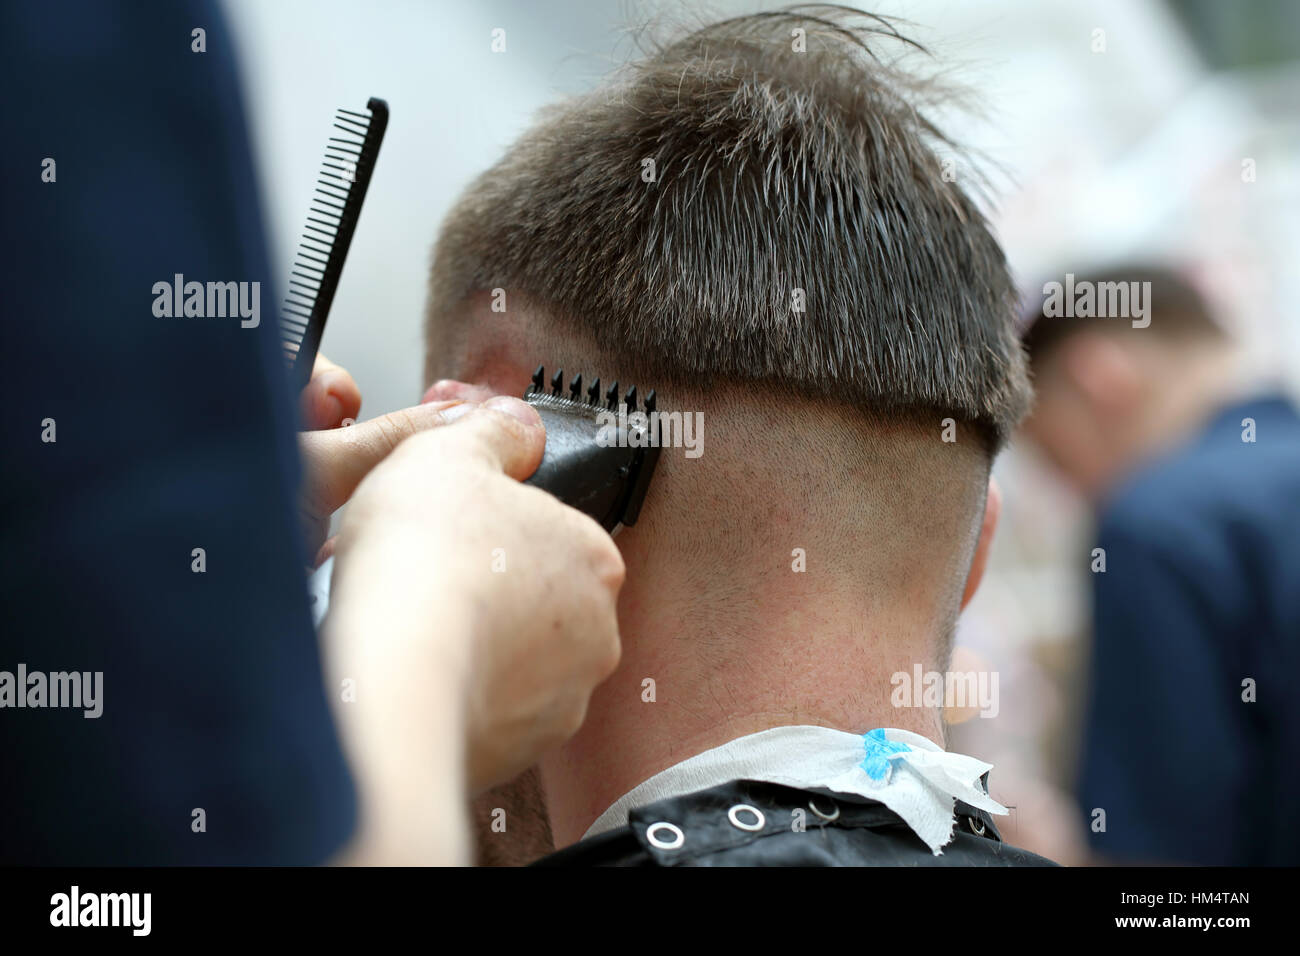 Barber shaving hair by electric trimmer - Stock Image